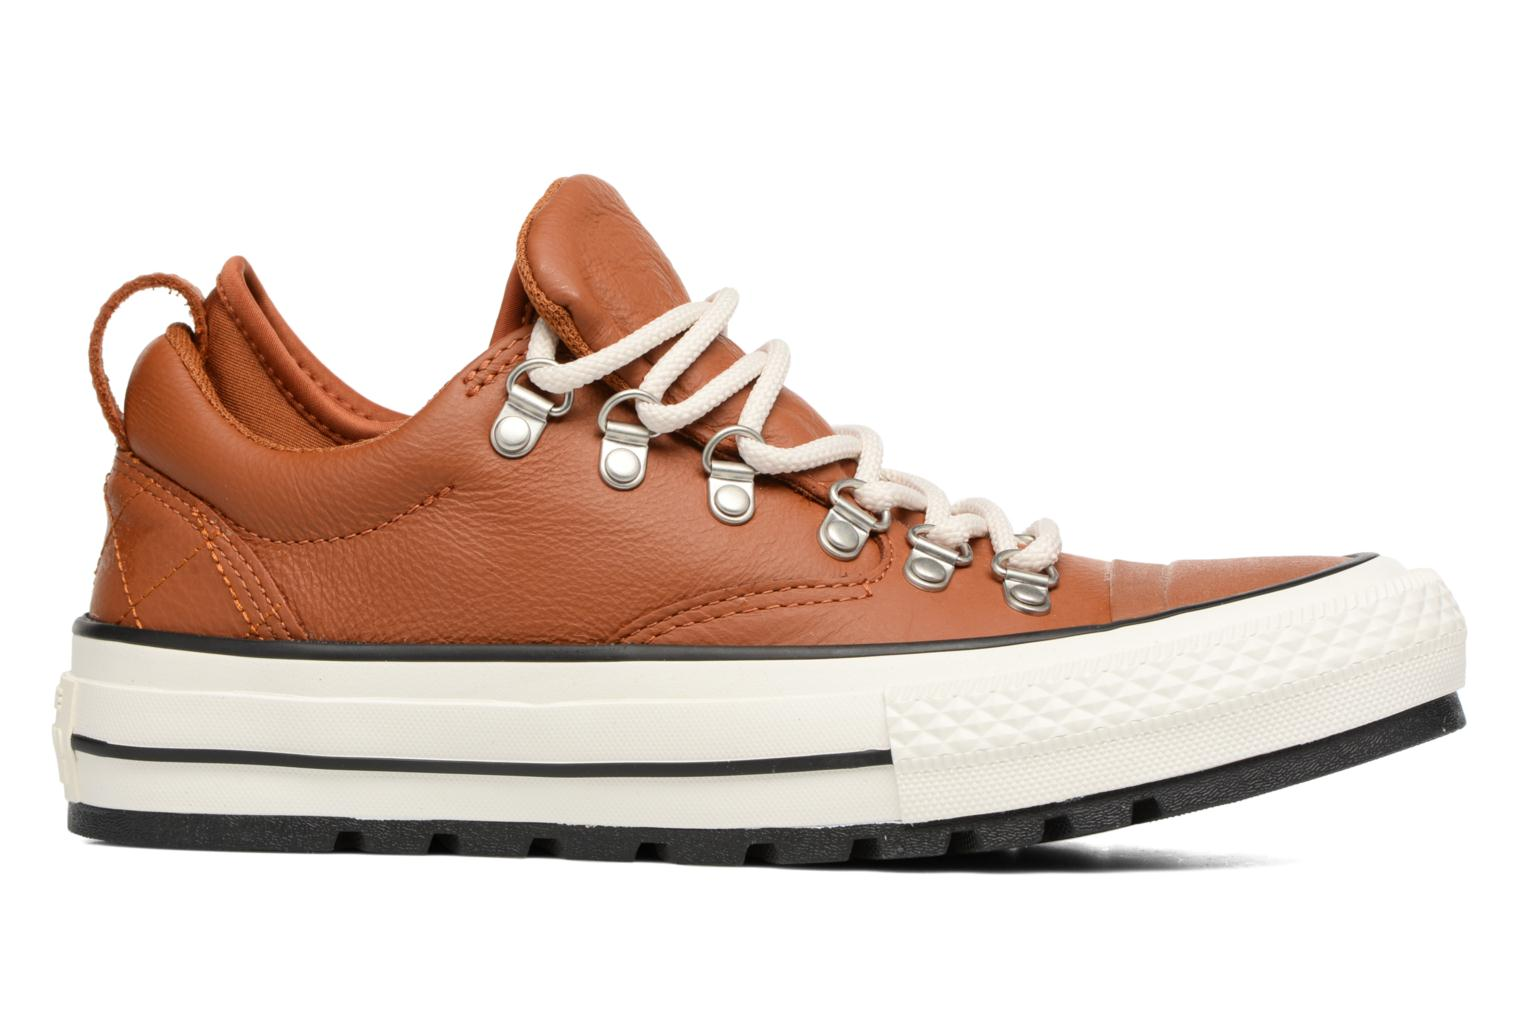 Baskets Converse Chuck Taylor All Star Descent Quilted Leather Ox W Marron vue derrière